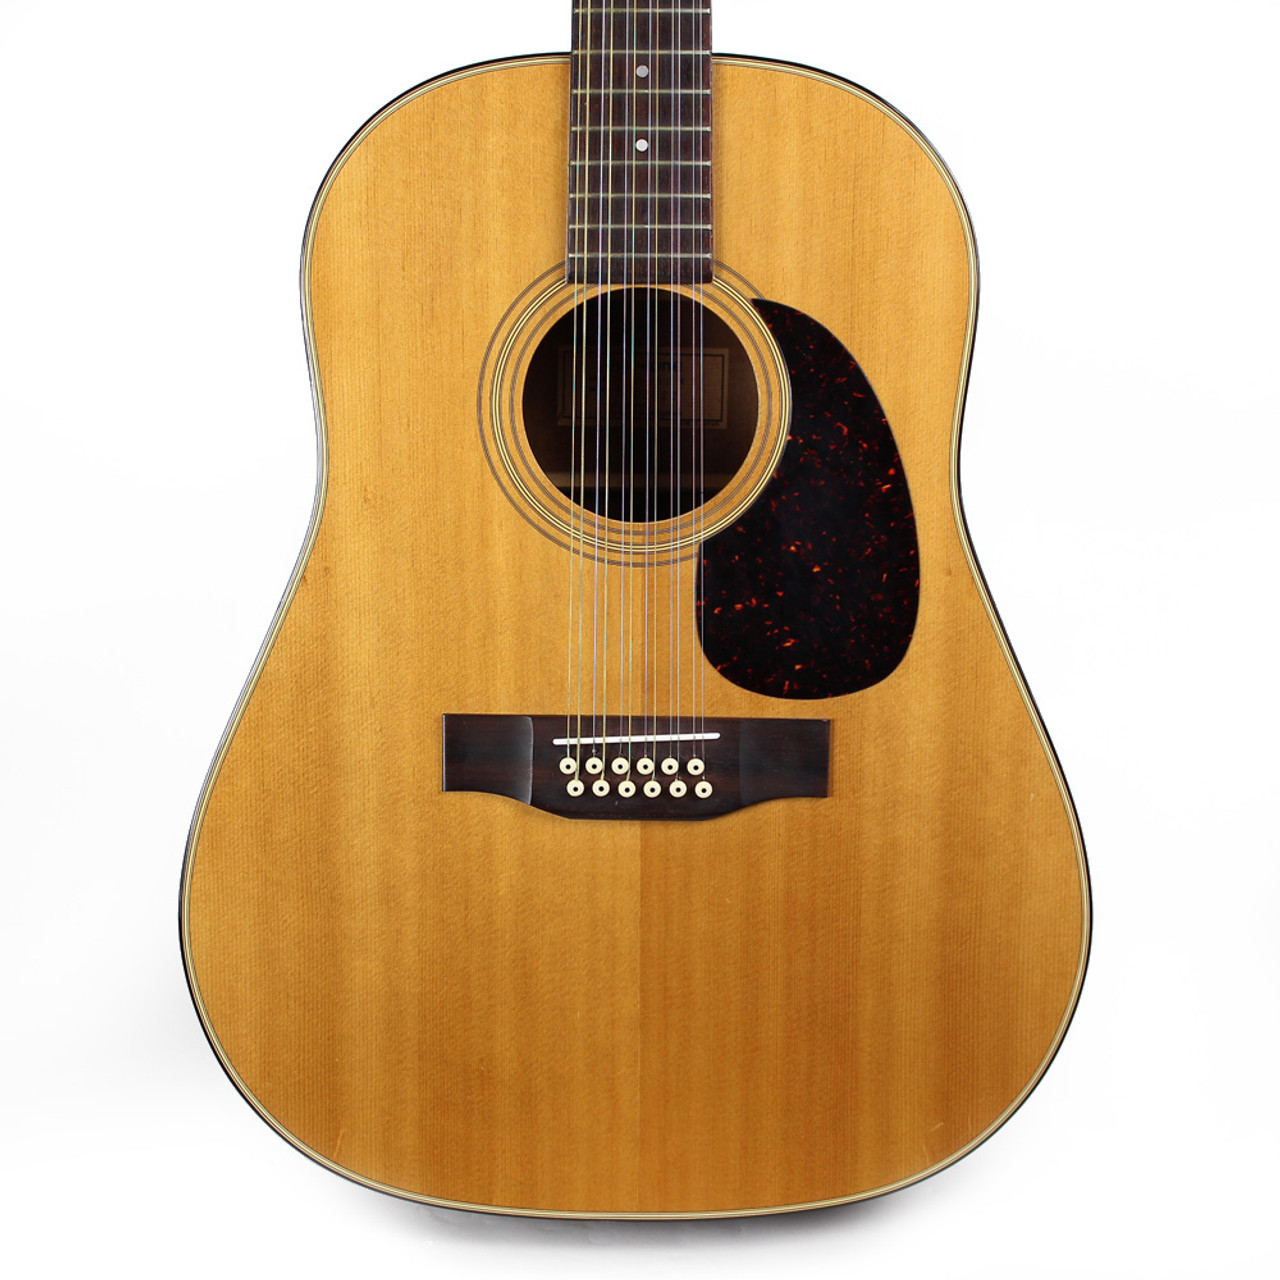 used epiphone pr 650 12 12 string acoustic guitar in natural cream city music. Black Bedroom Furniture Sets. Home Design Ideas